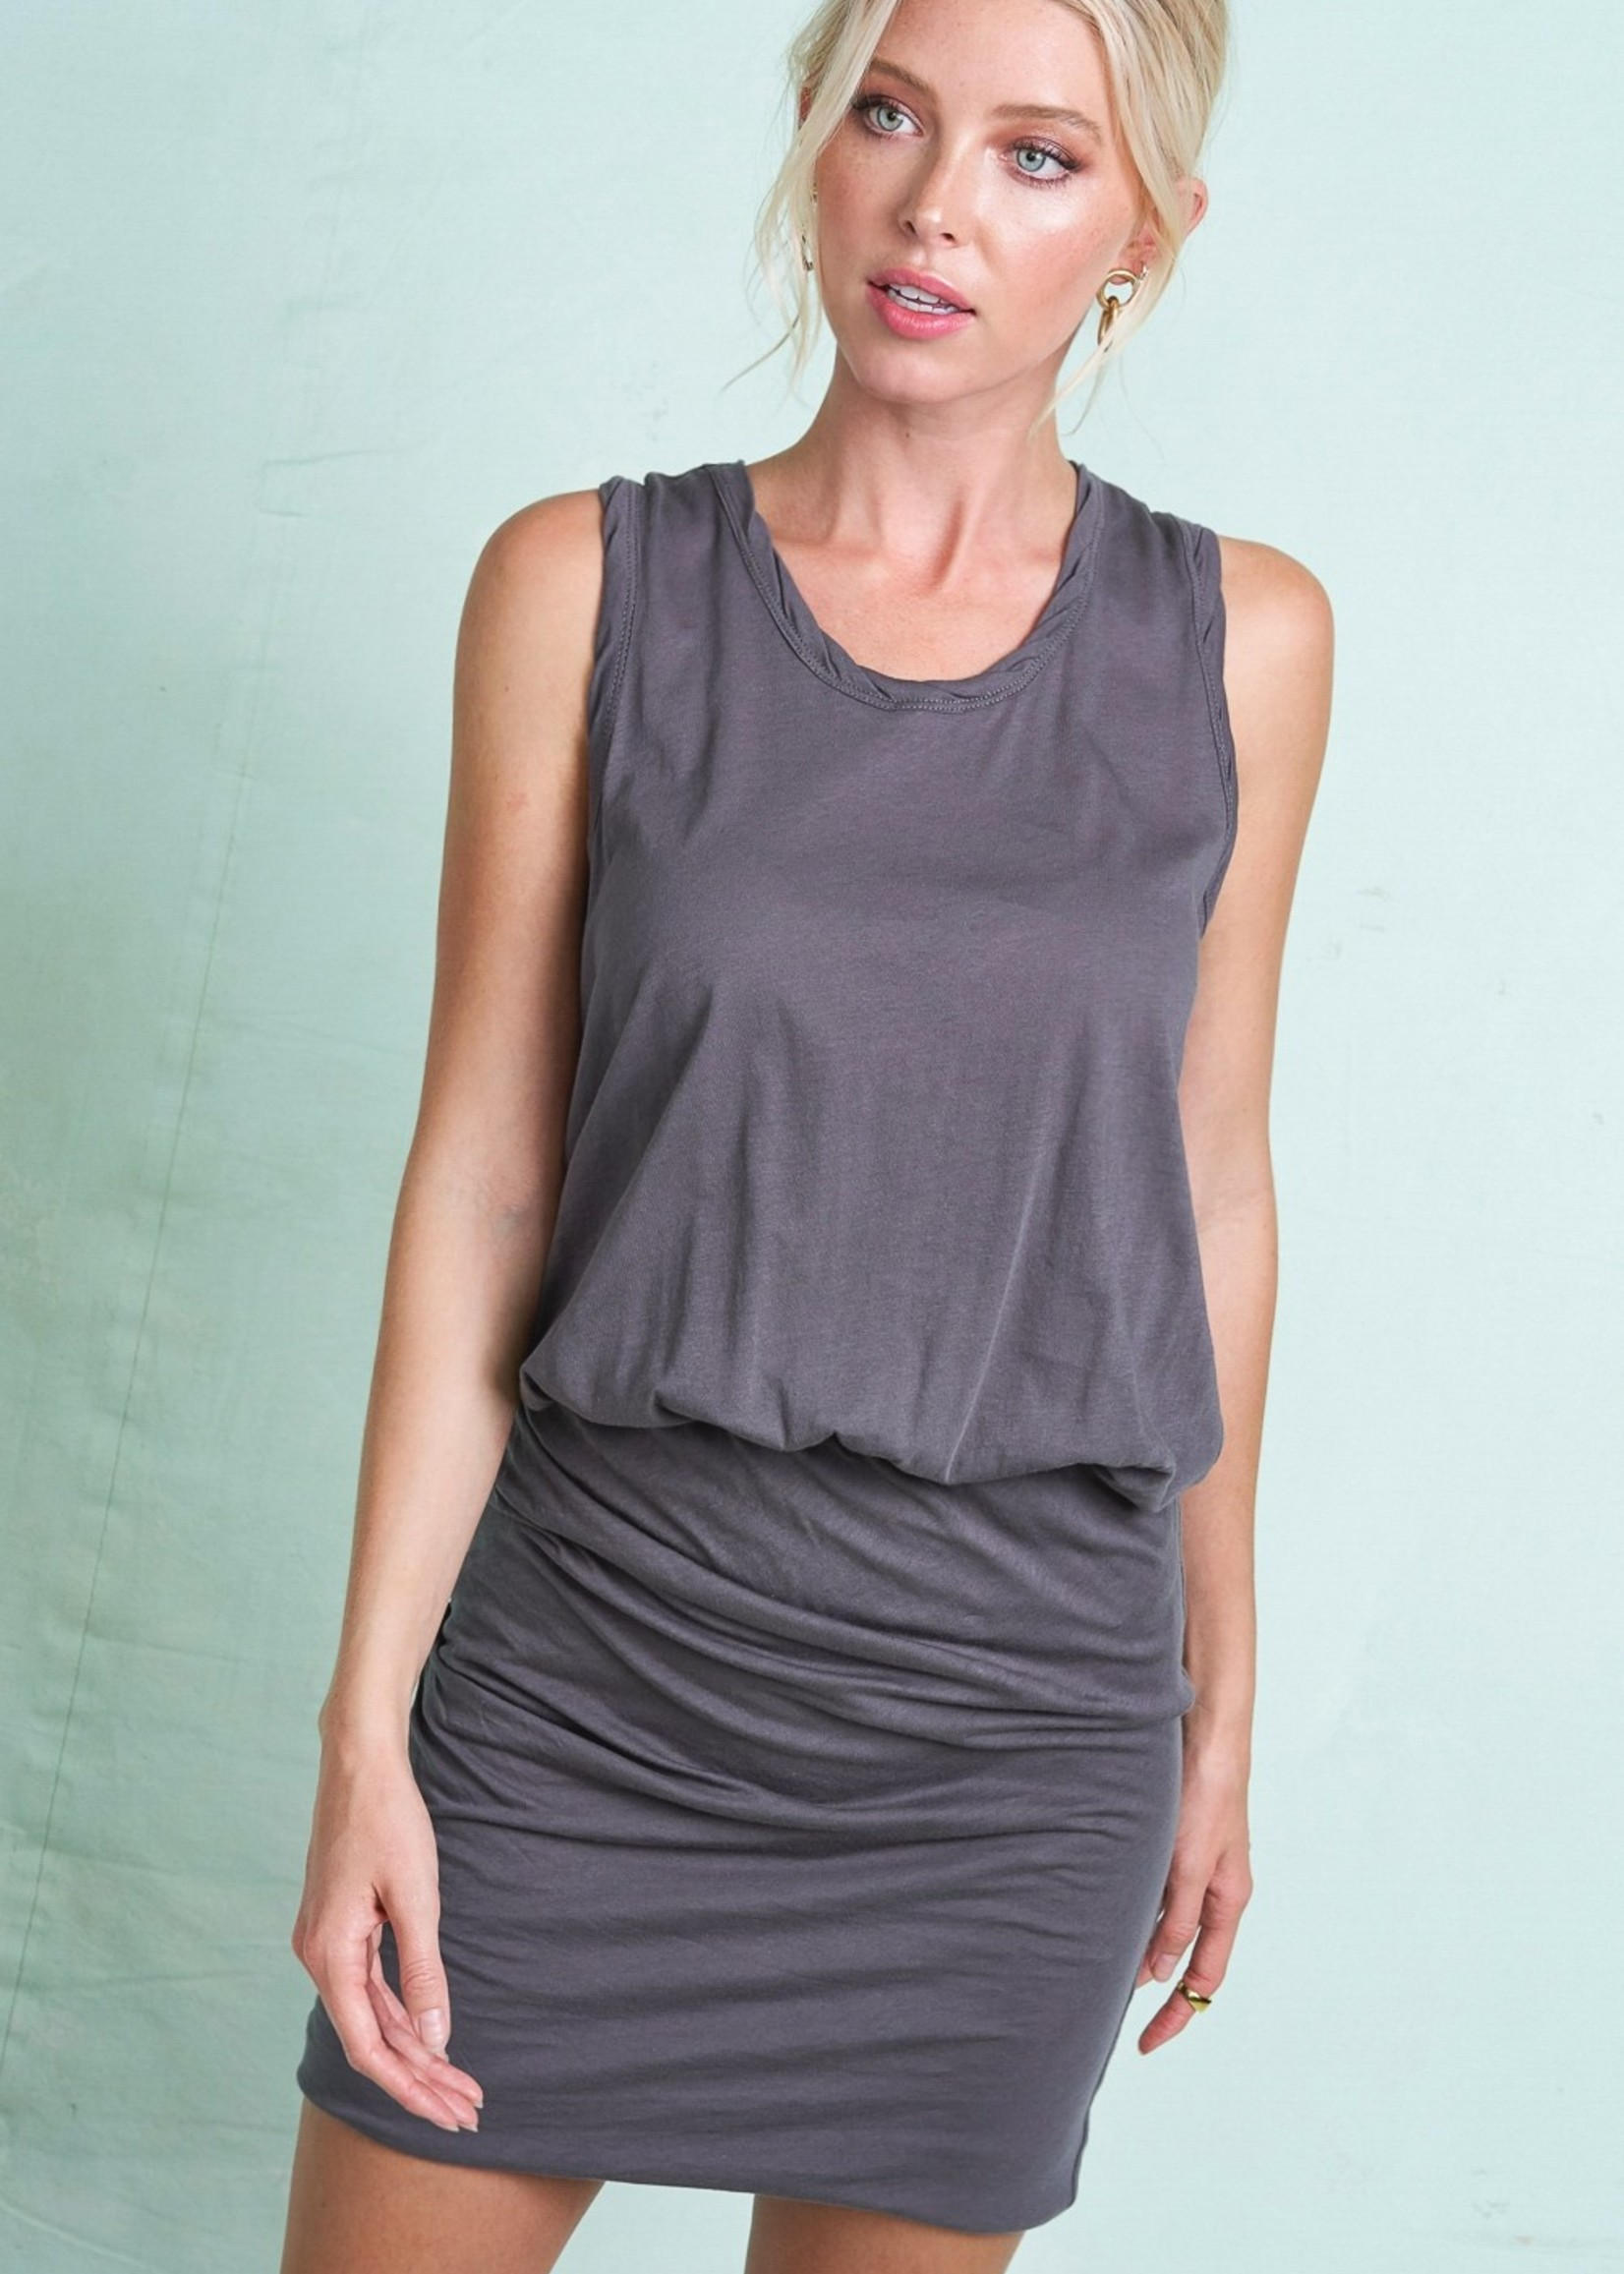 Sleeveless Rouched Knit Dress - Carbon